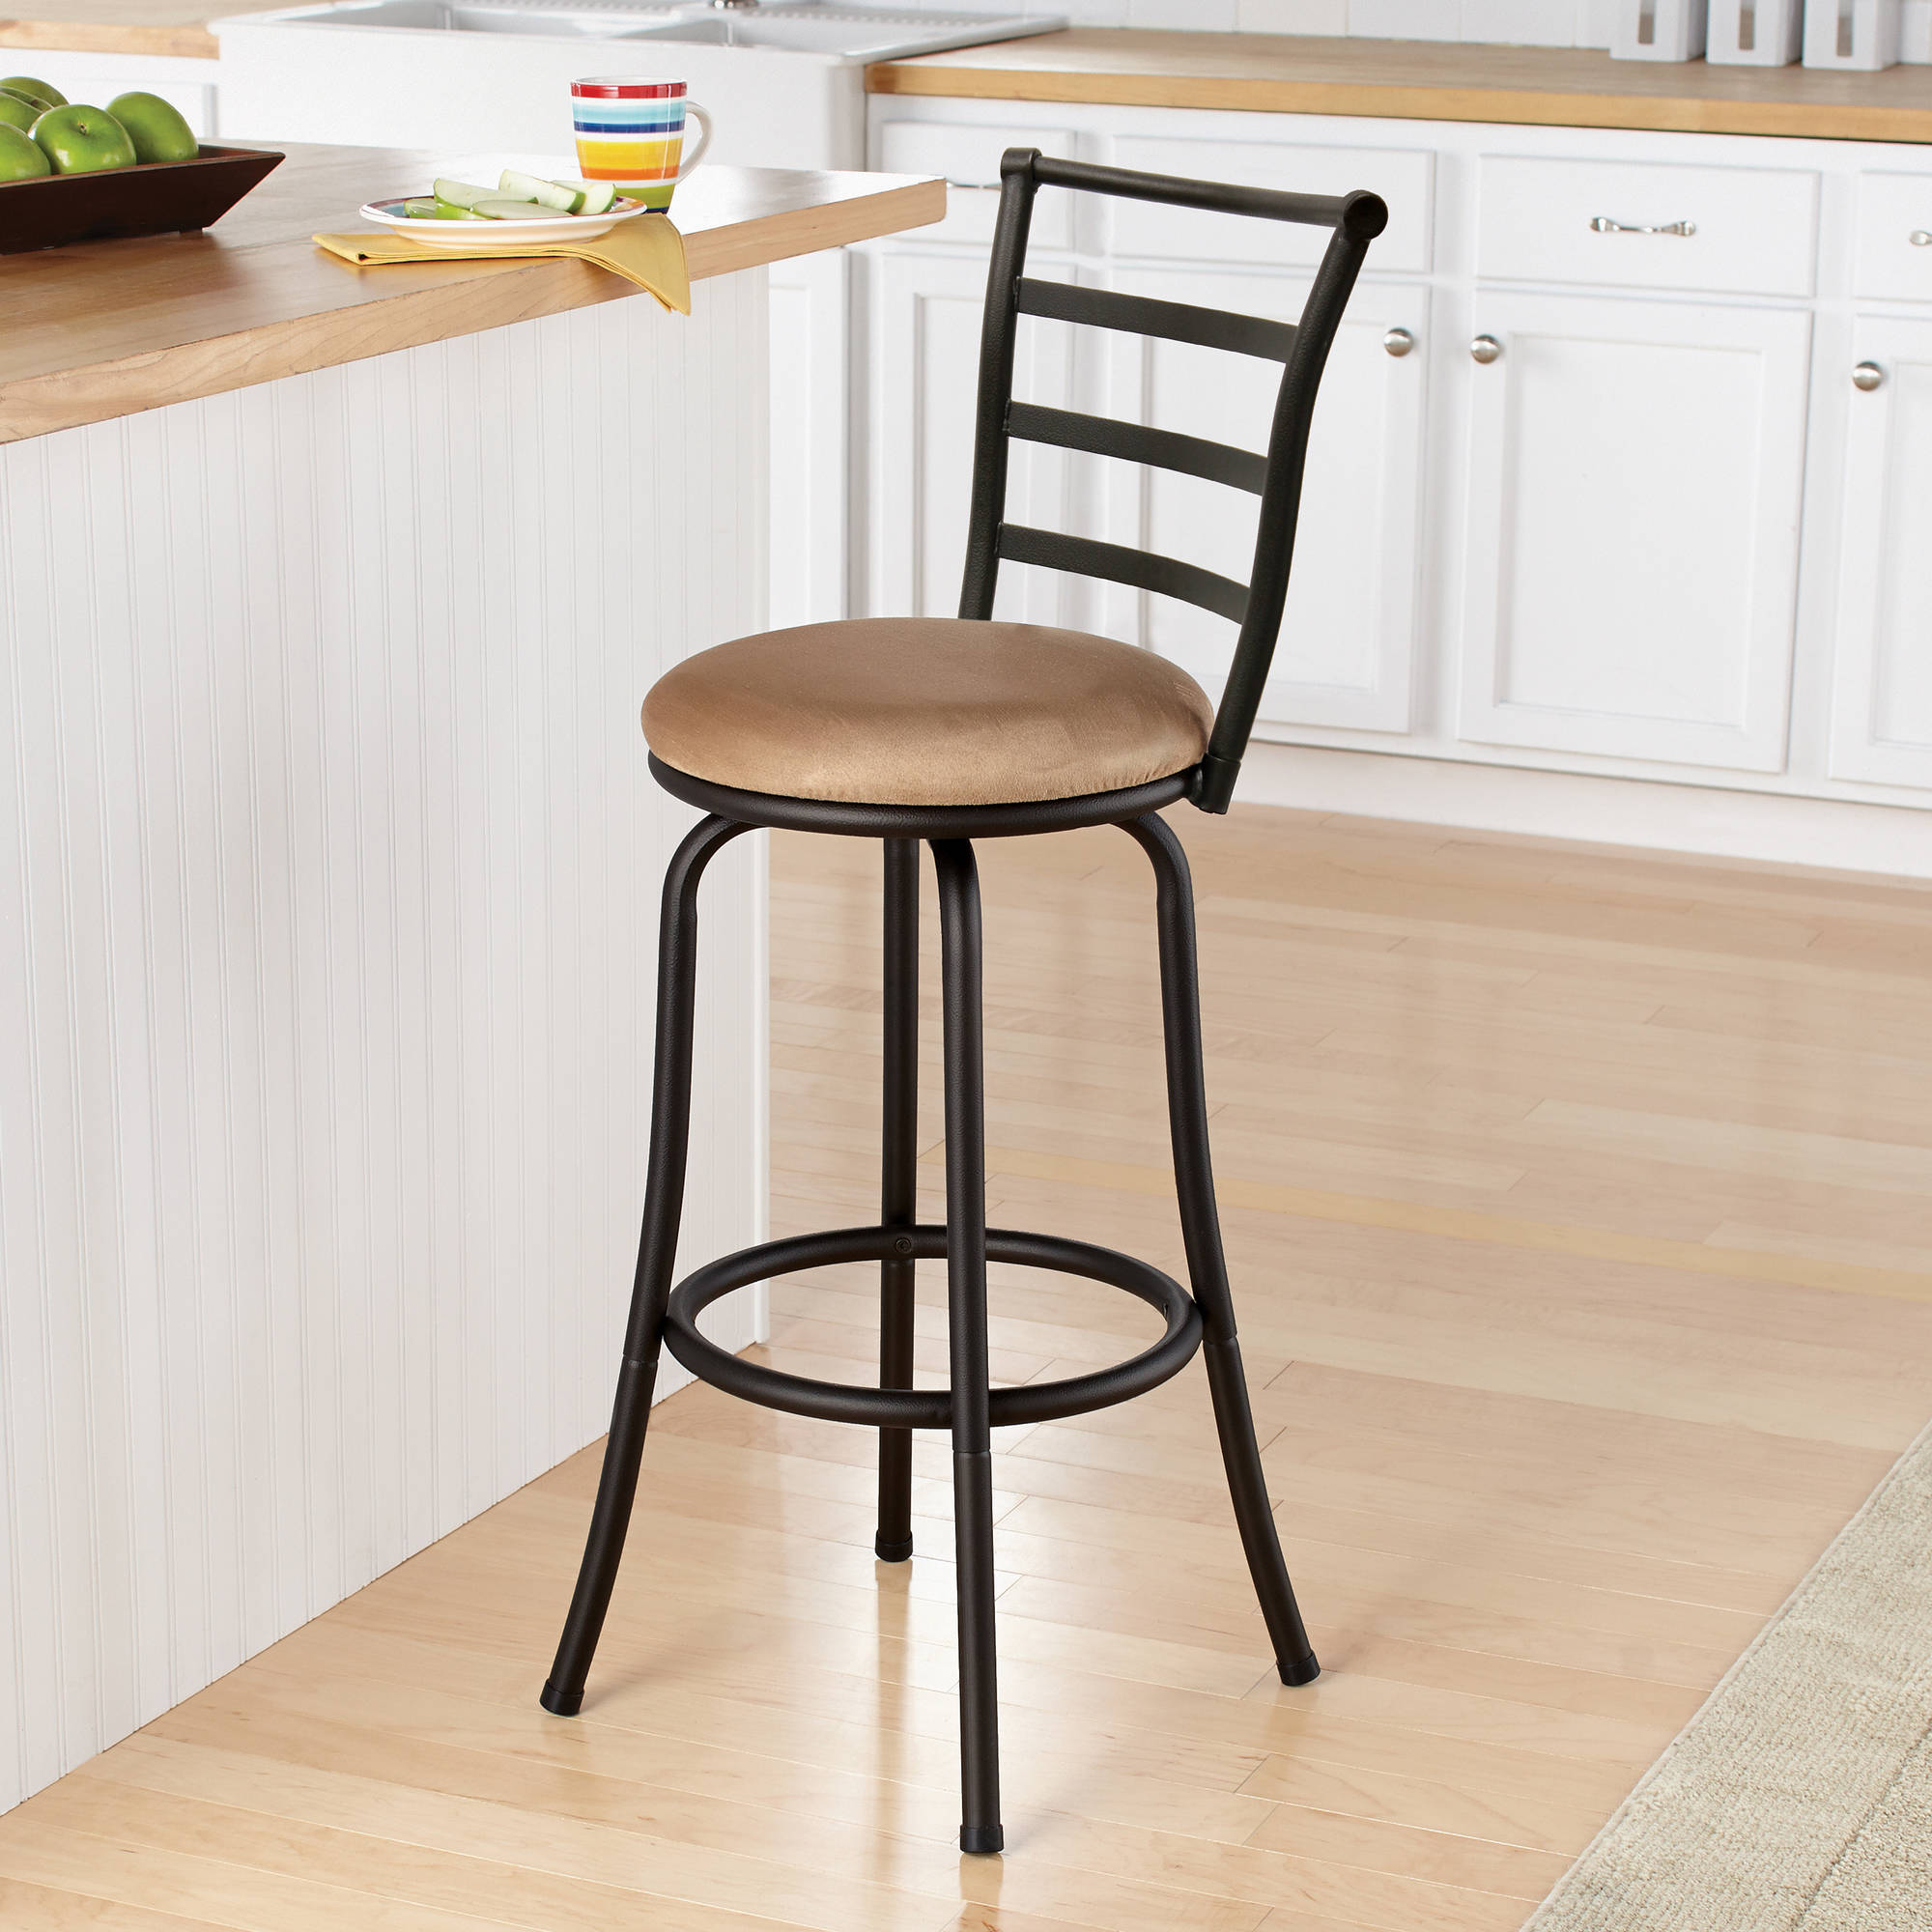 Mainstays Ladder Back Black Barstool Multiple Colors